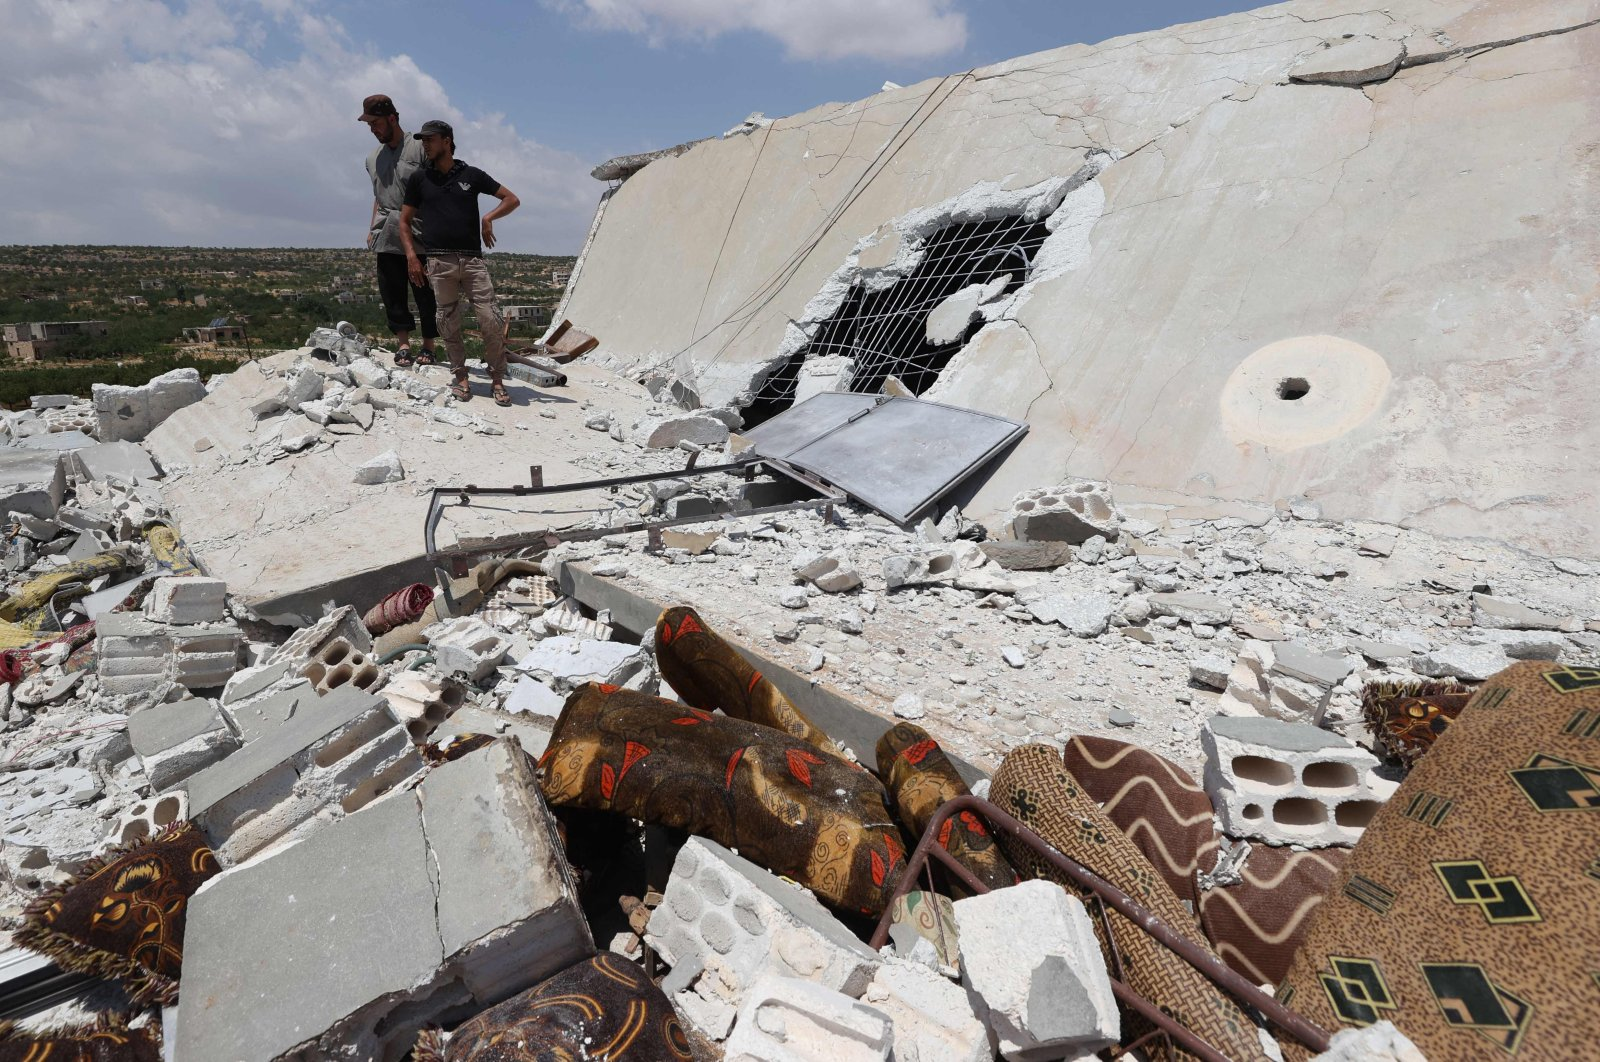 People inspect a damaged house destroyed by a Russian missile attack in the Jabal al-Zawiya region in the south of Syria's rebel-held Idlib province, July 4, 2021. (Photo by Omar Haj Kadour/AFP)